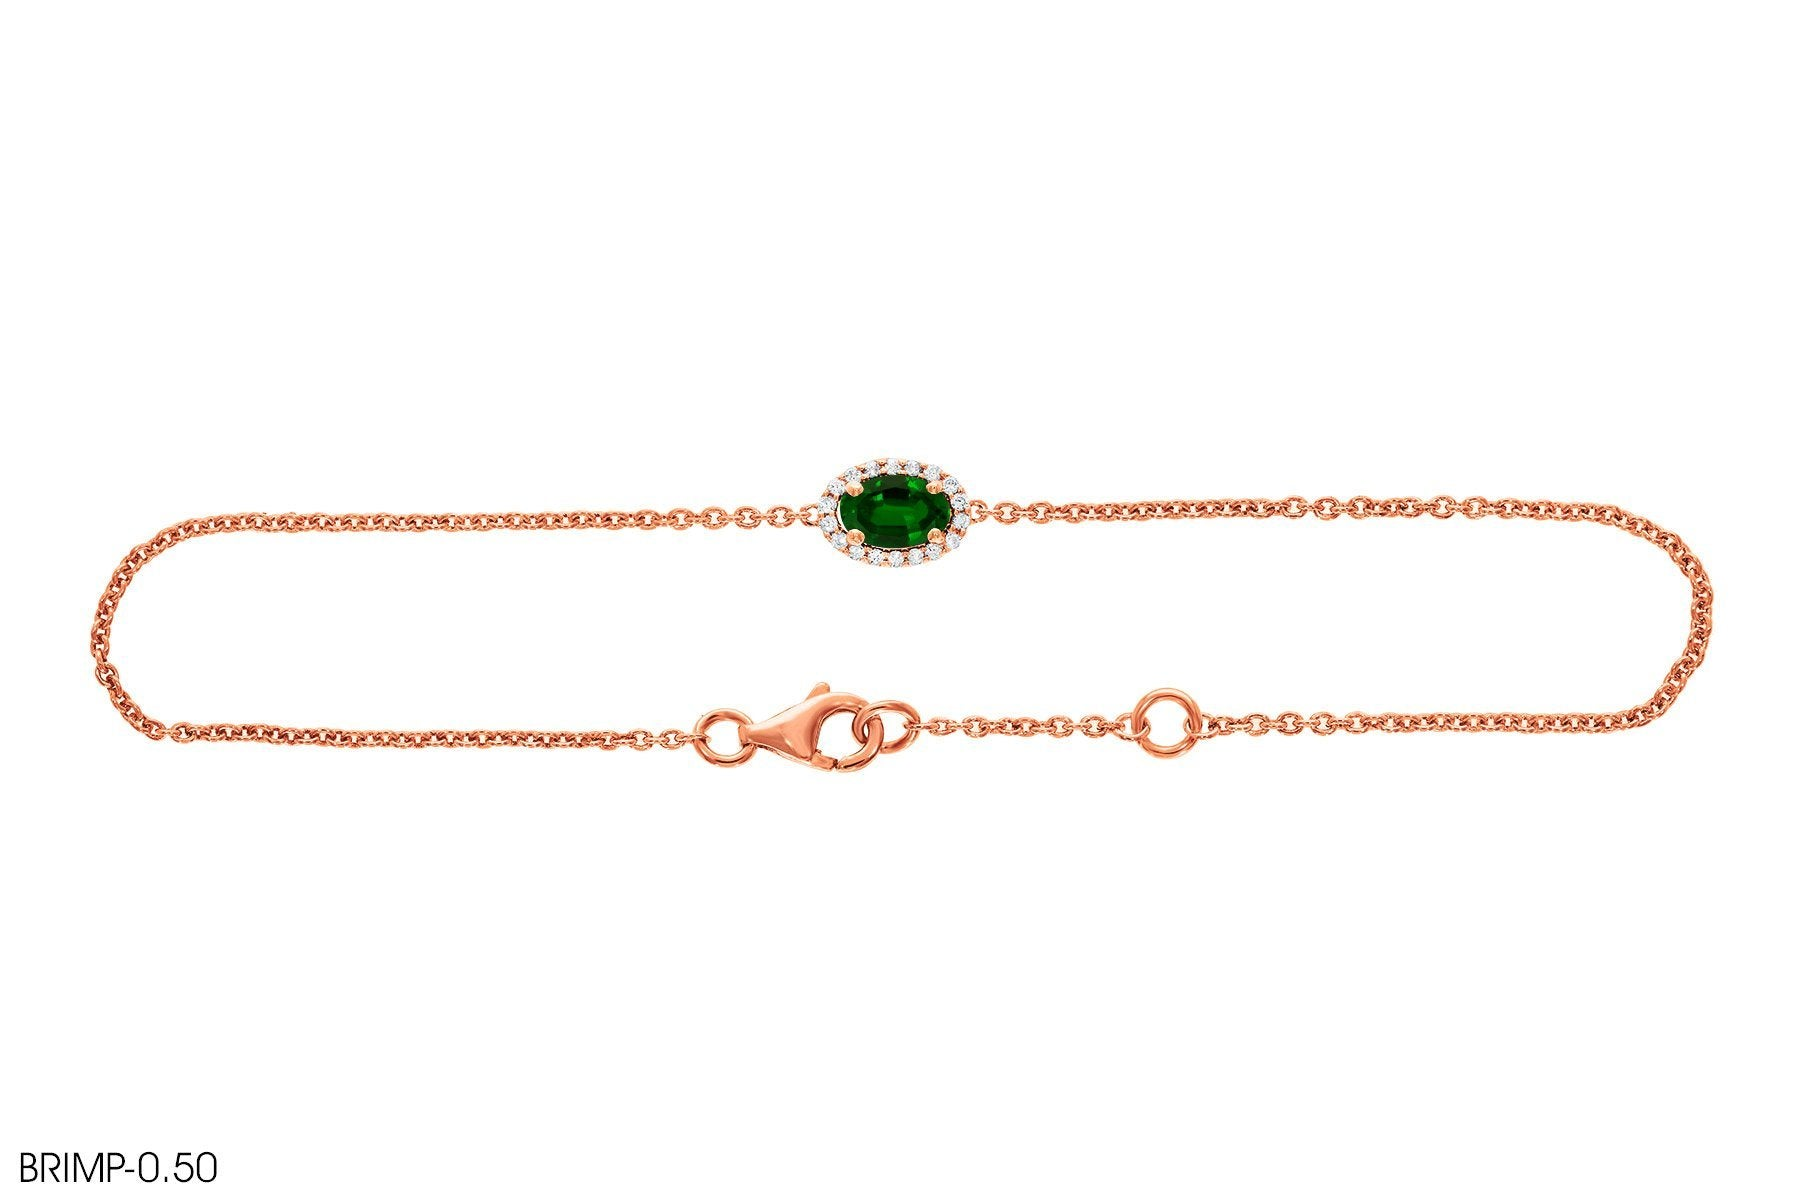 Emerald Diamond Bracelet In 18k Gold